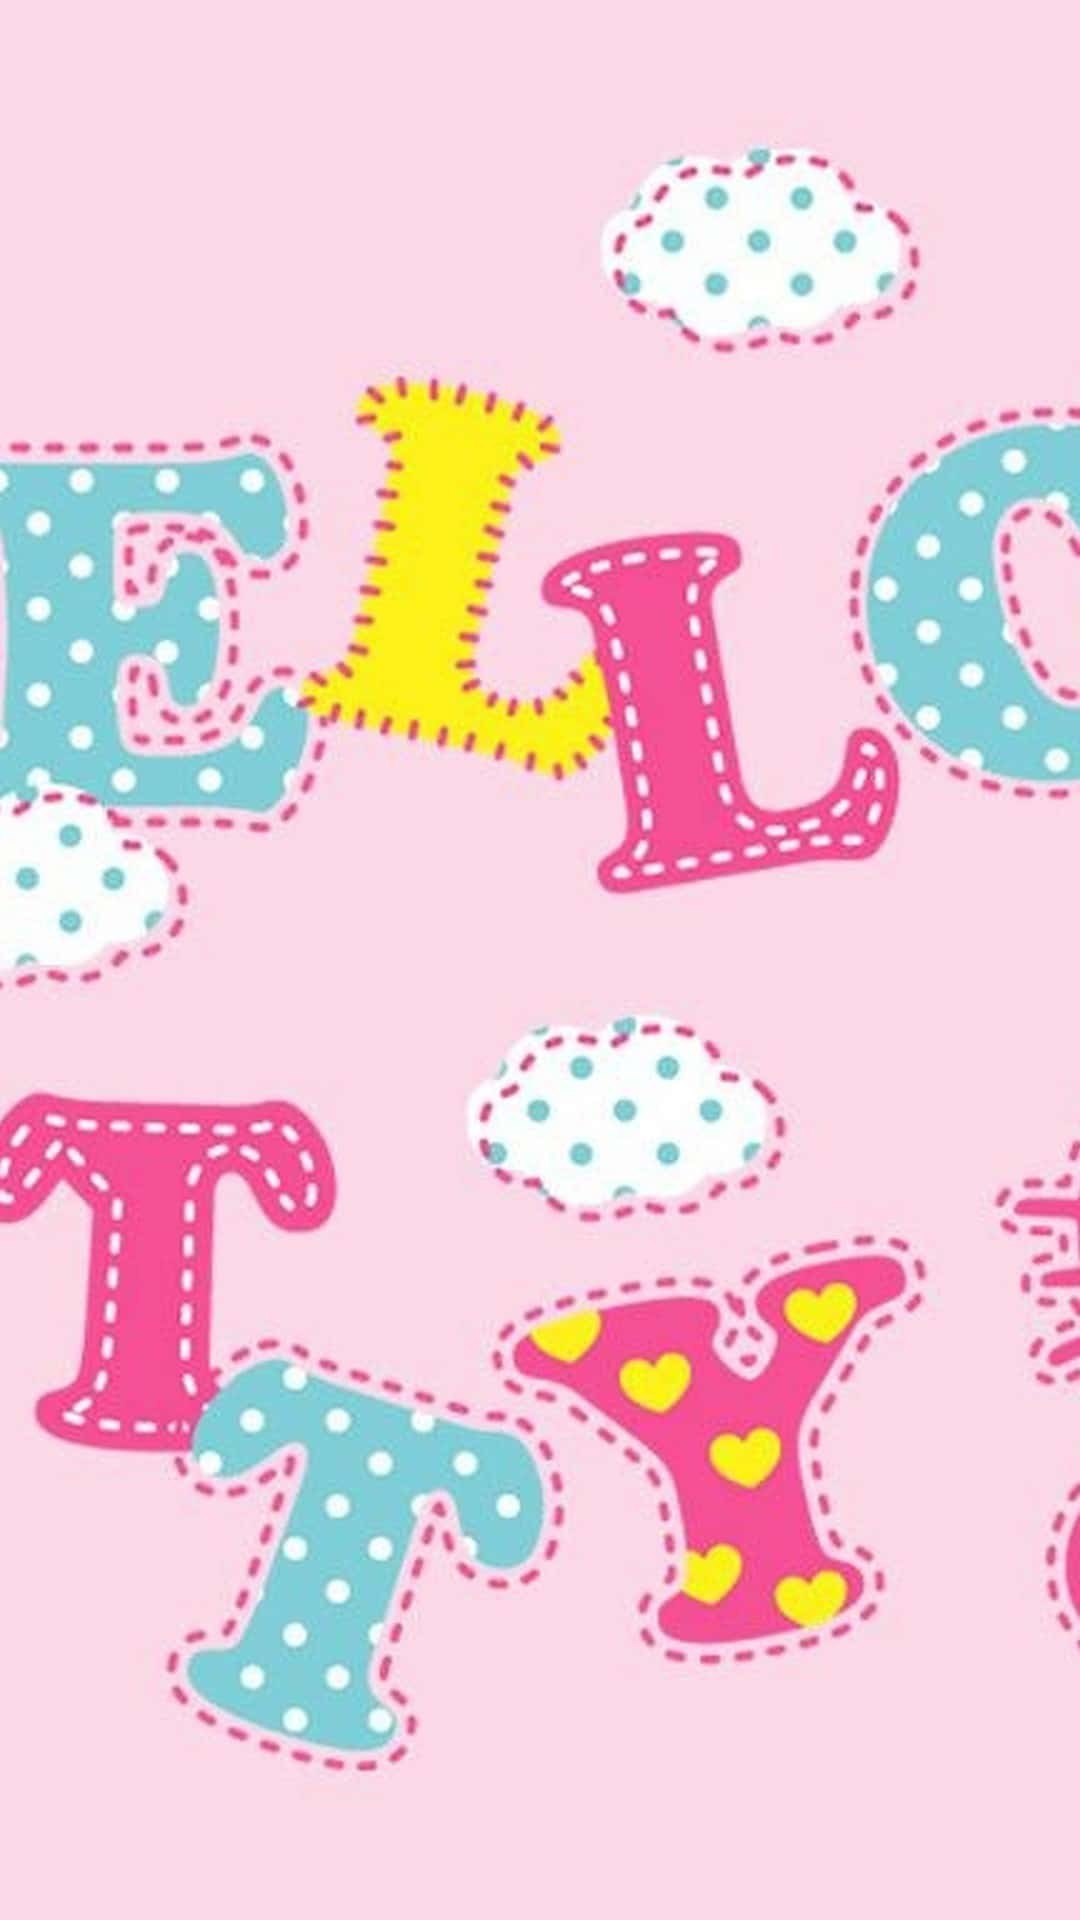 Good Wallpaper Hello Kitty Computer - 781293-glitter-hello-kitty-backgrounds-for-computers-1080x1920-1080p  Pictures_964483.jpg